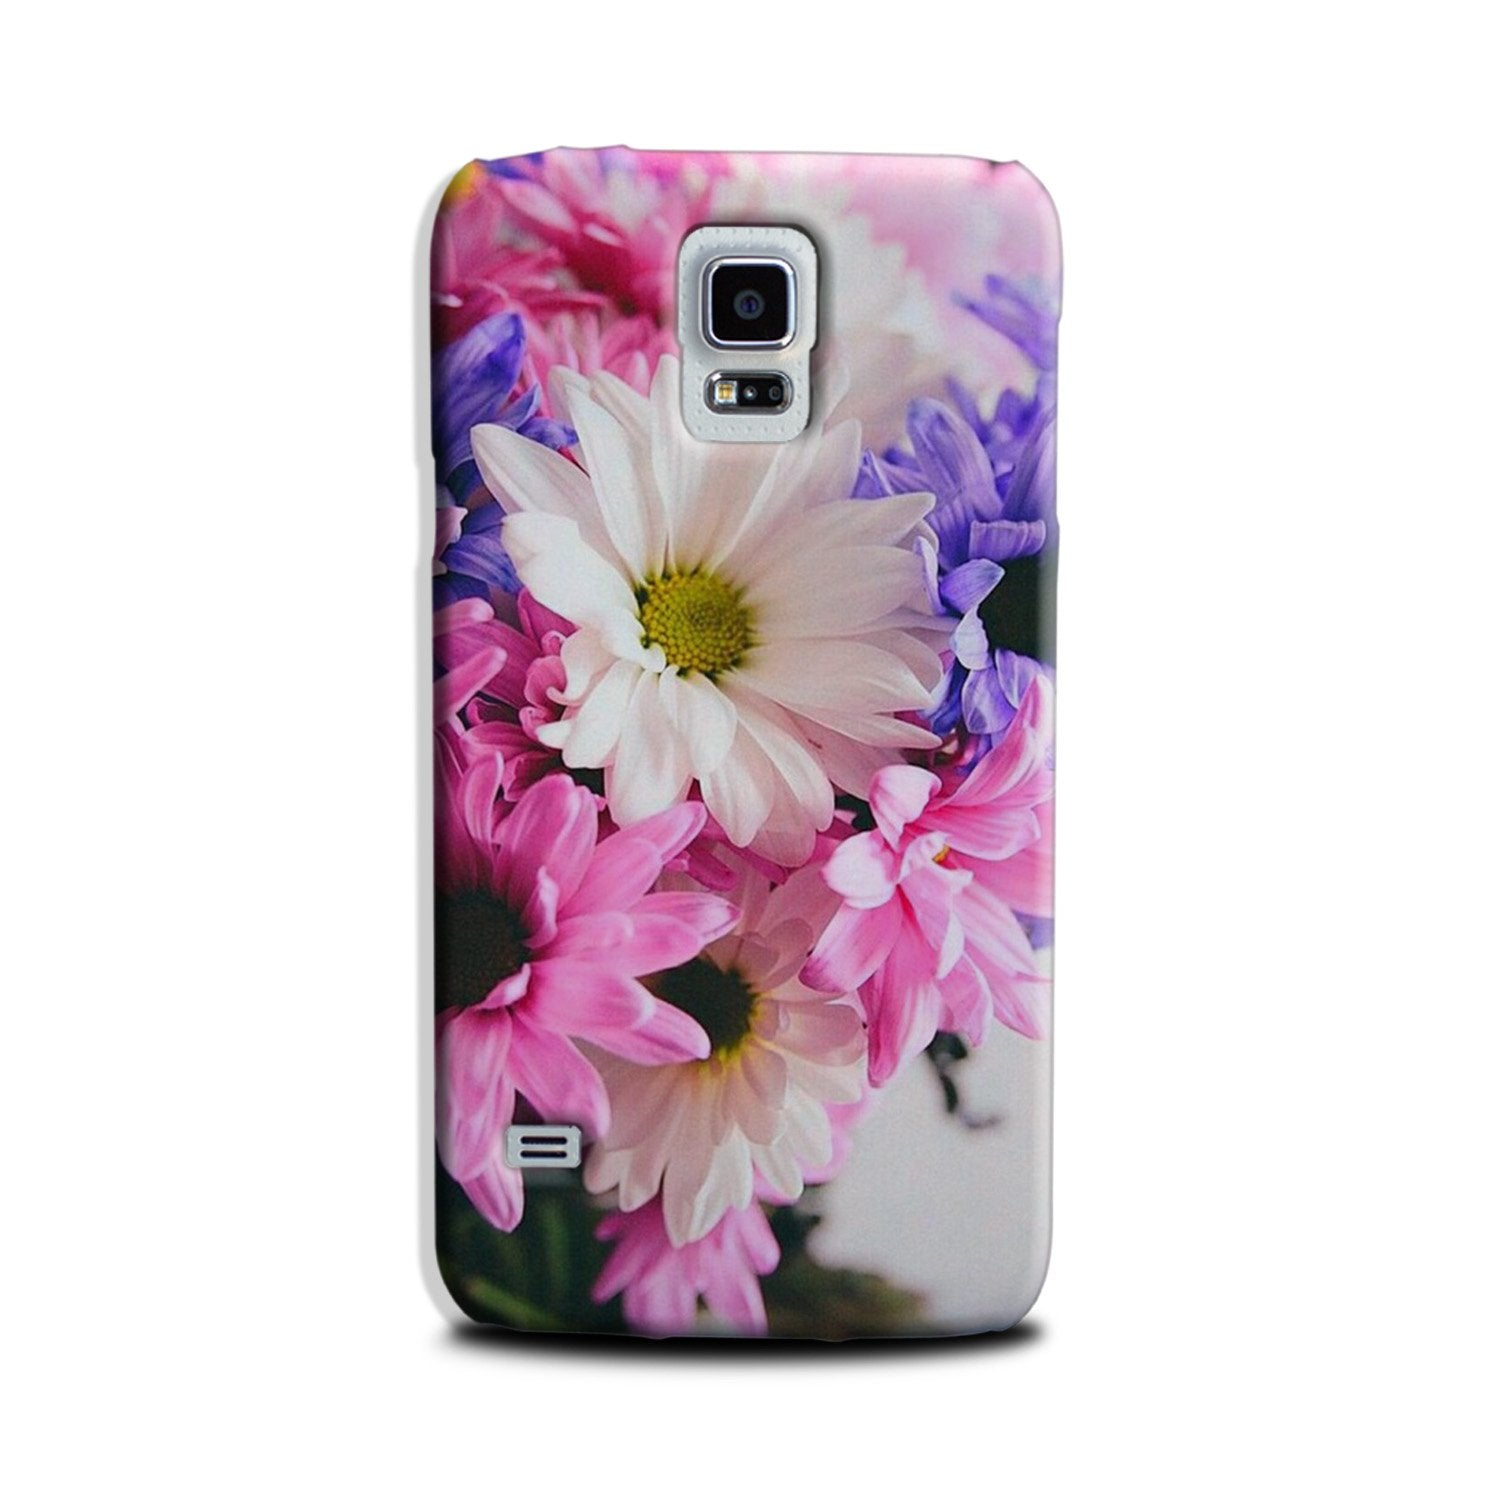 Coloful Daisy Case for Galaxy S5